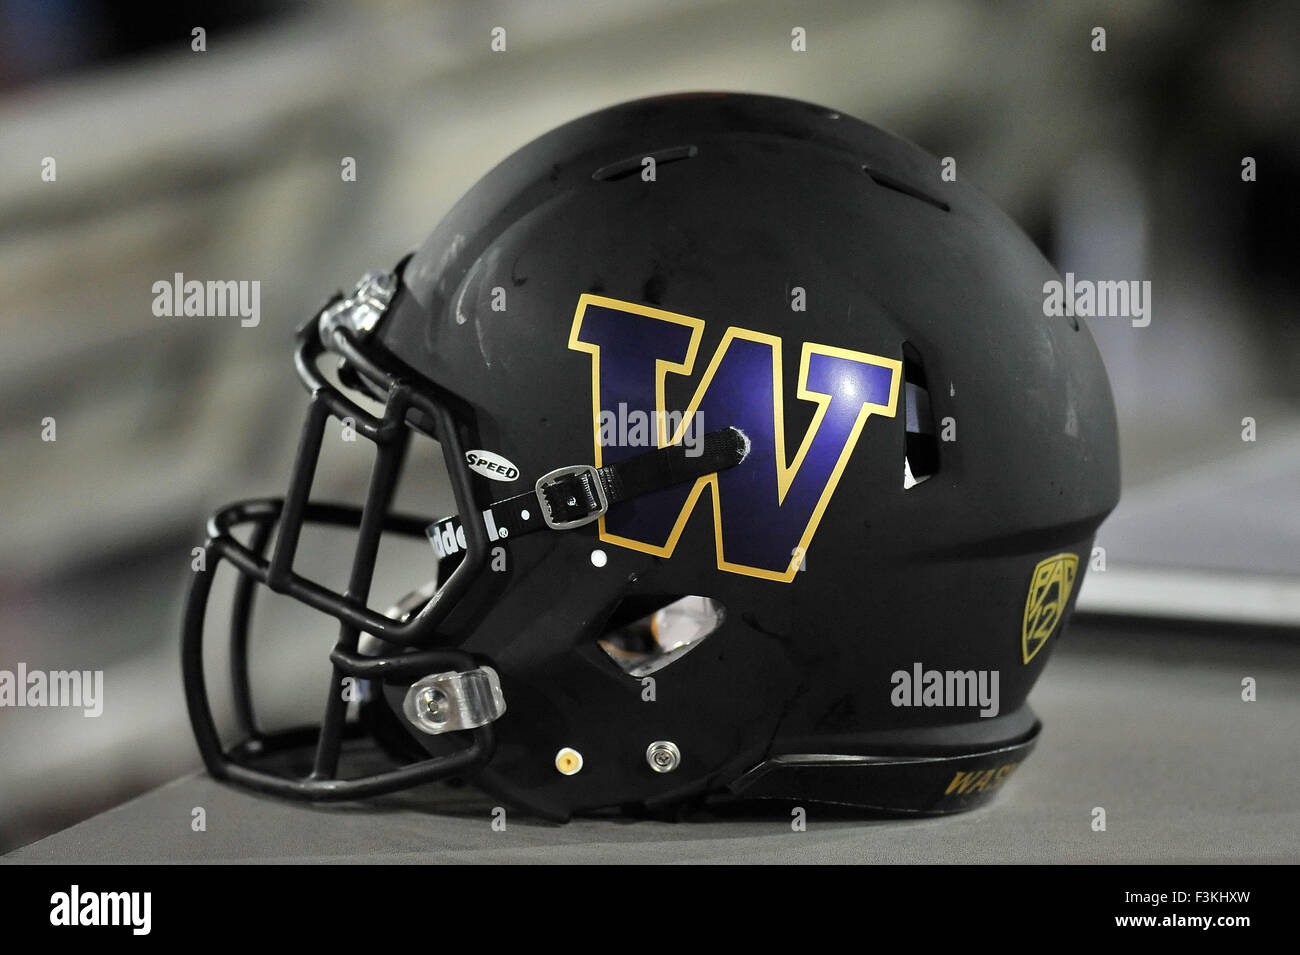 outlet store 18d67 572d8 Los Angeles, CA, USA. 8th Oct, 2015. Washington Huskies ...